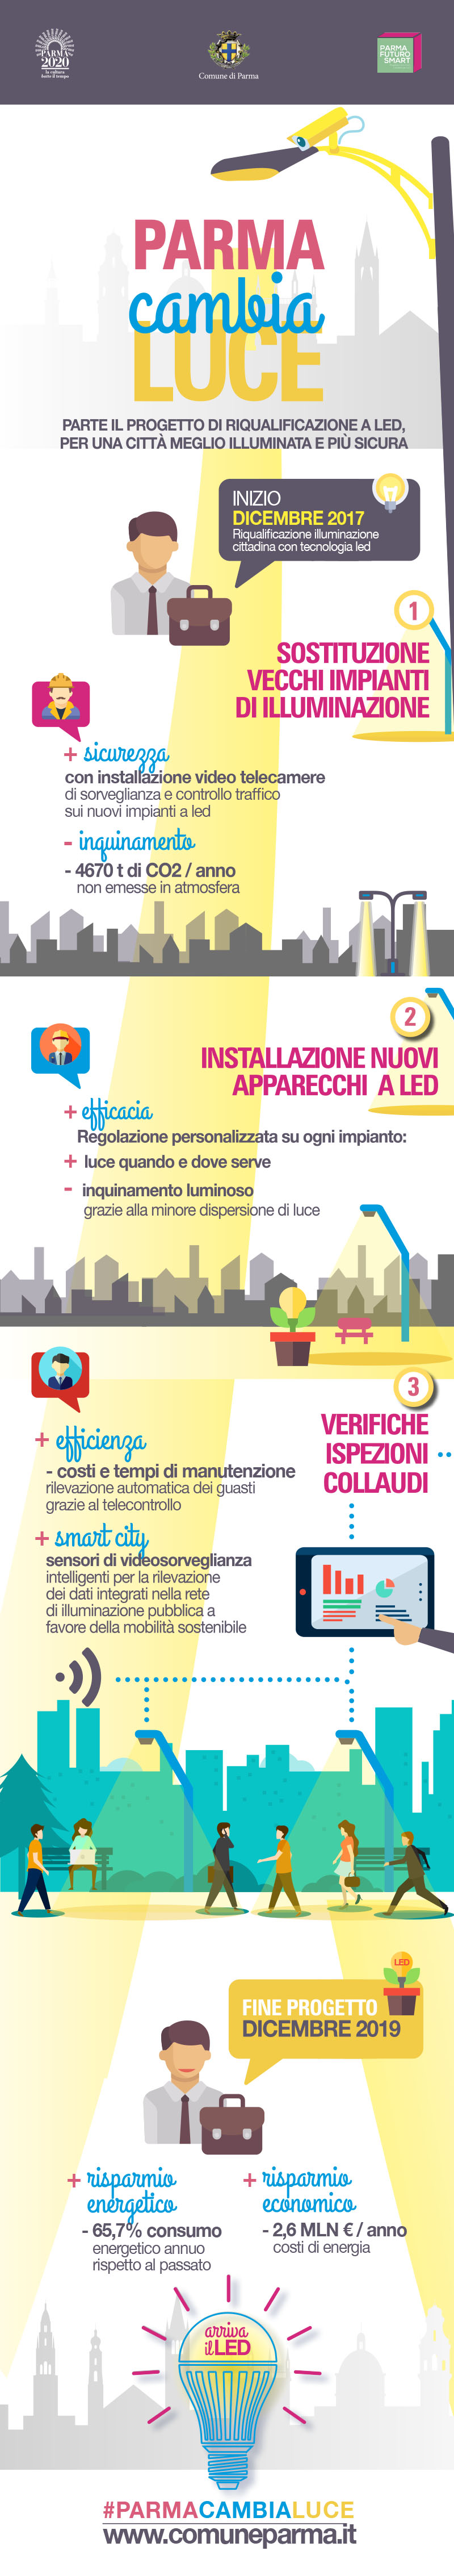 Infografica-Parma-cambia-luce